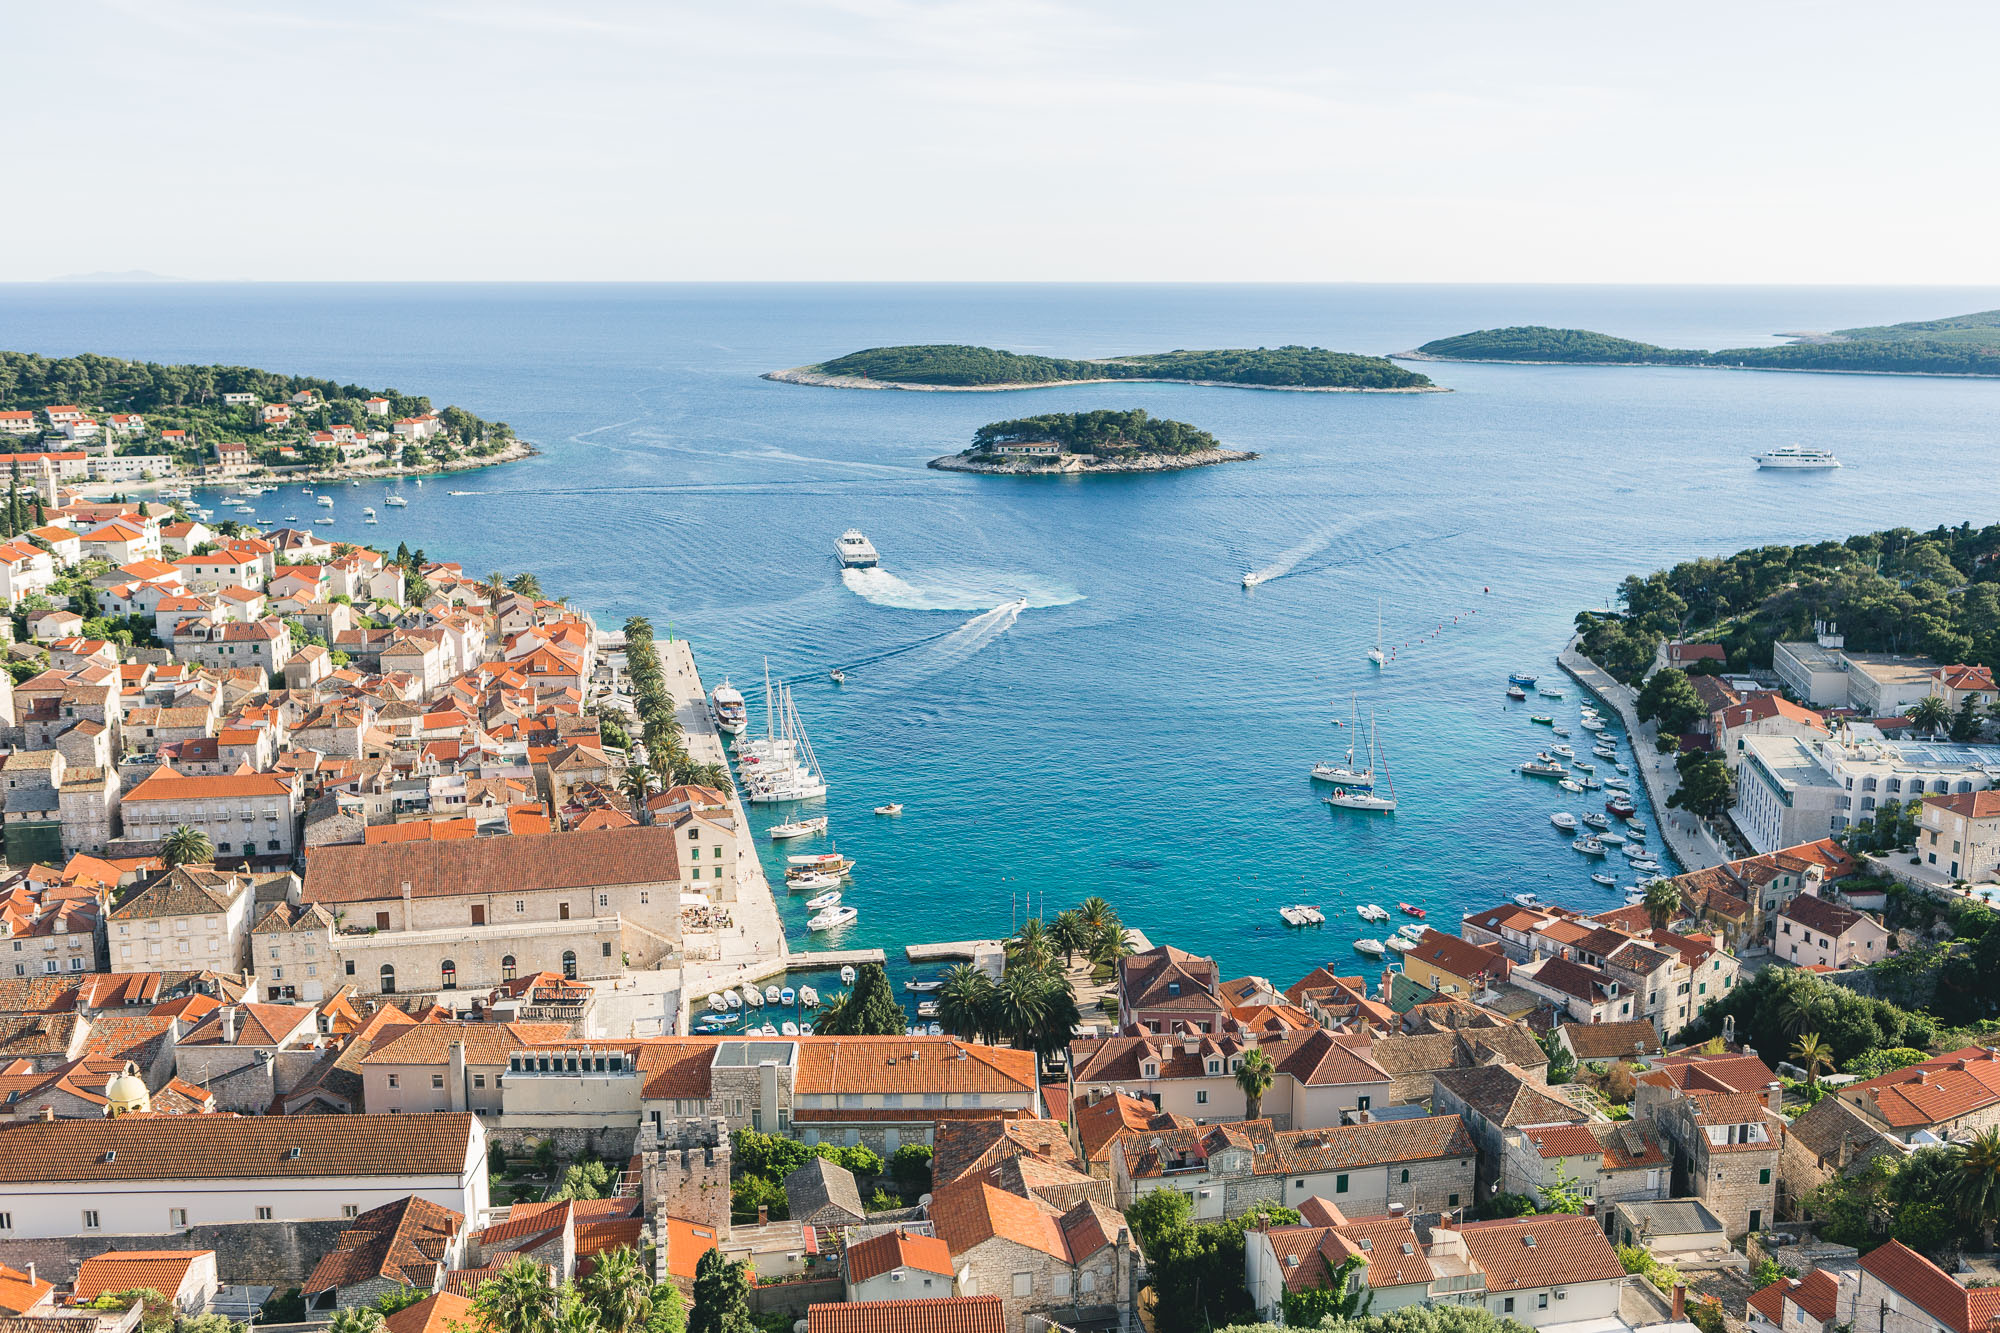 Castle views of Hvar Island, Croatia